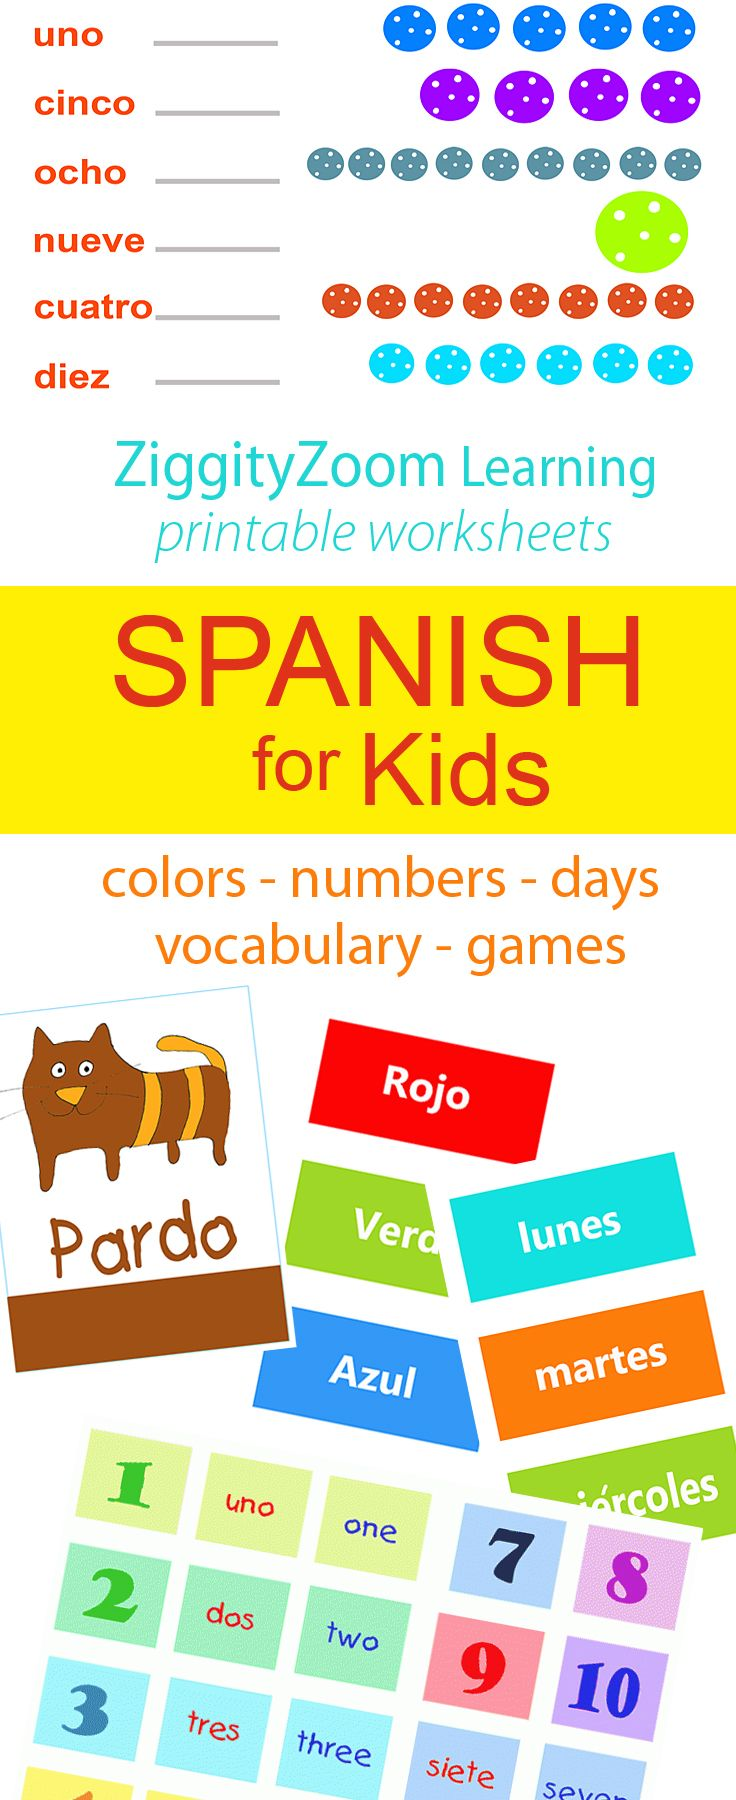 Spanish for Kids - 123TeachMe.com